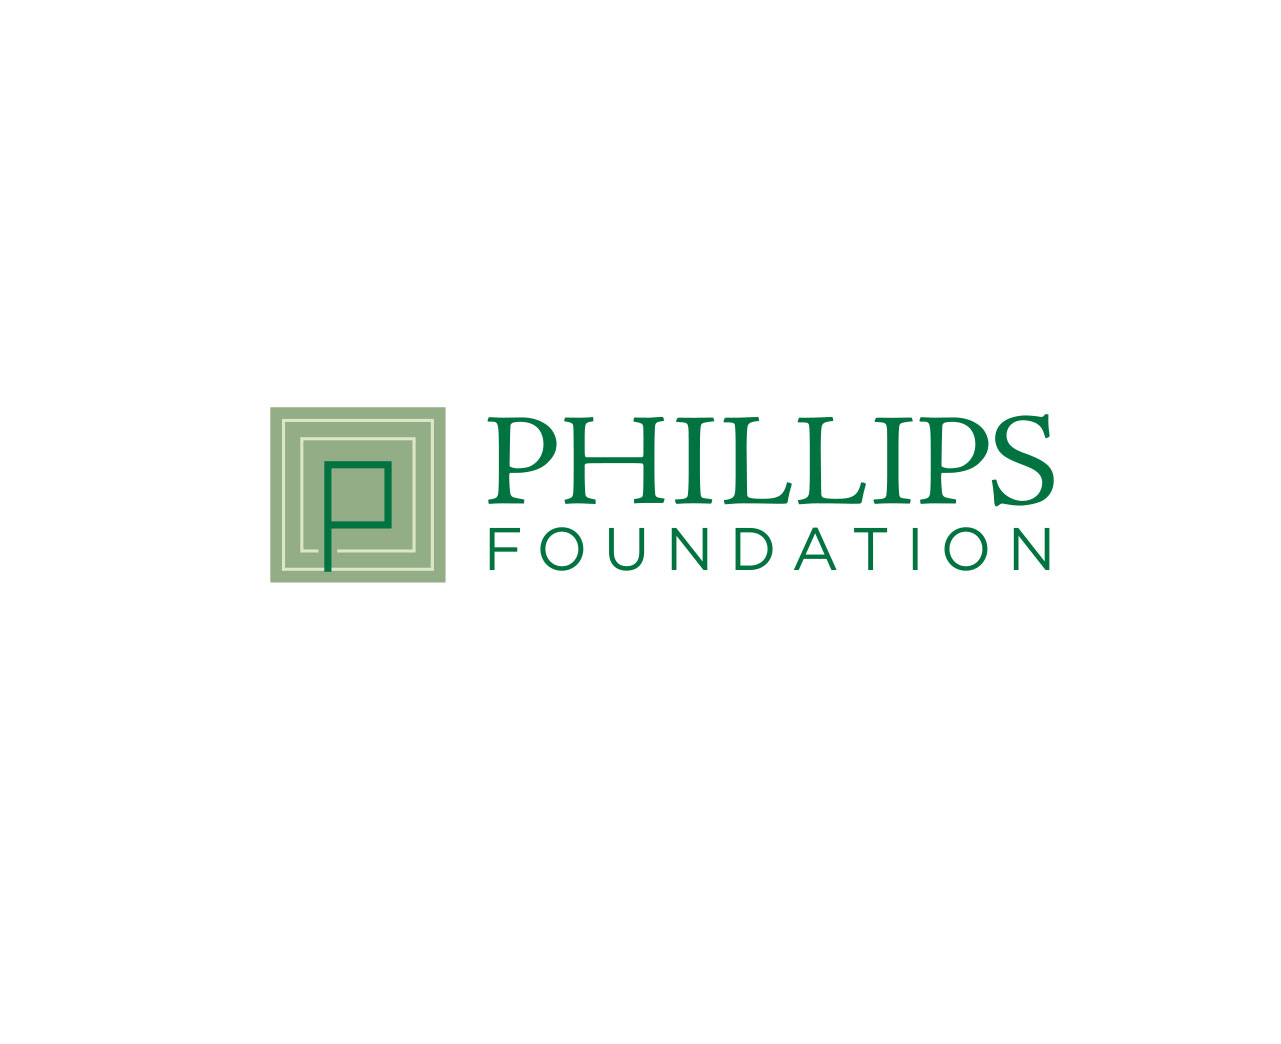 Phillip Foundation Logo Design Branding